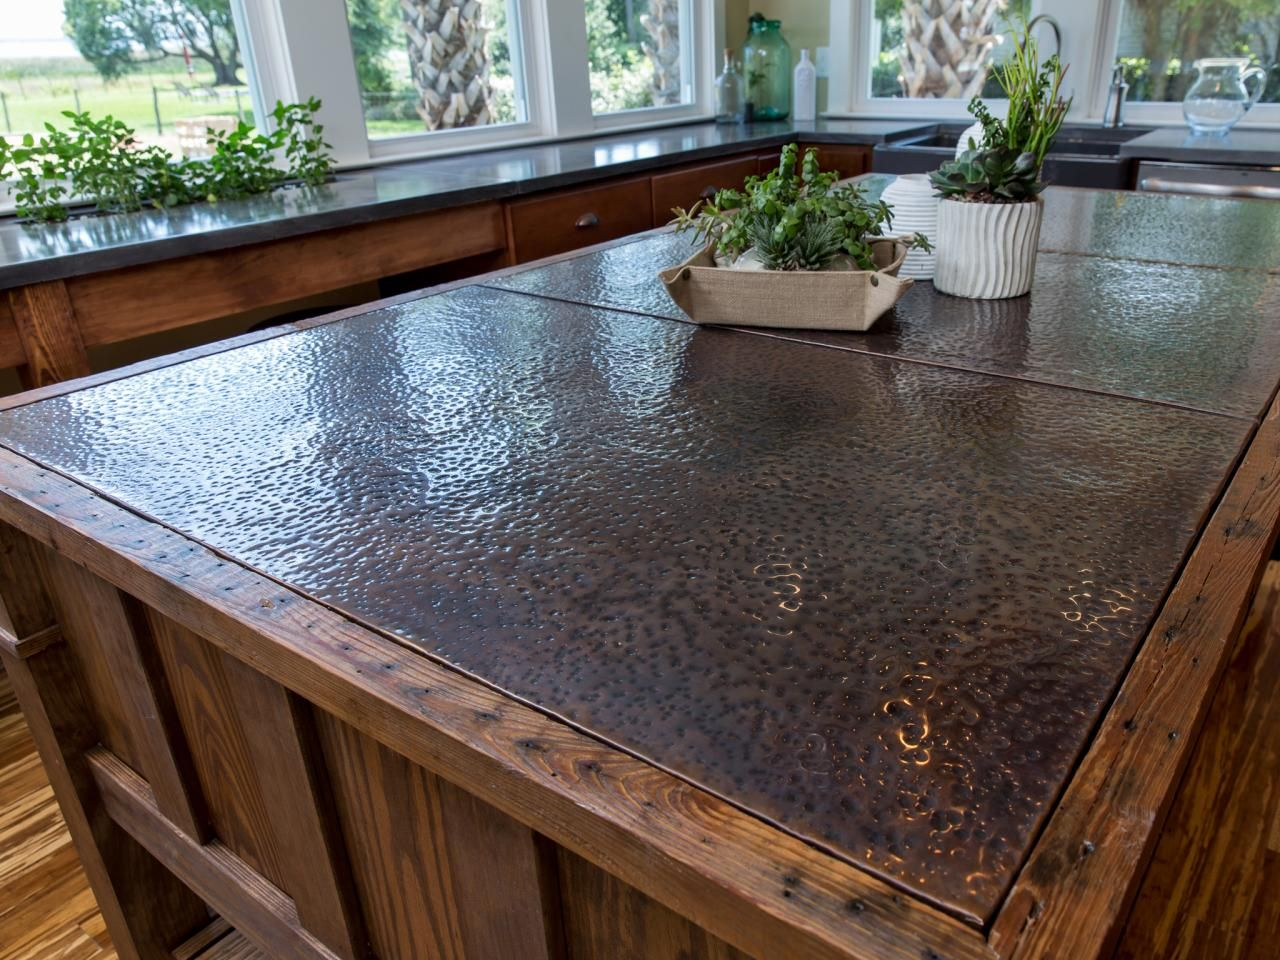 Western Countertops Kitchen Pictures From Blog Cabin 2014 Rustic Sinks